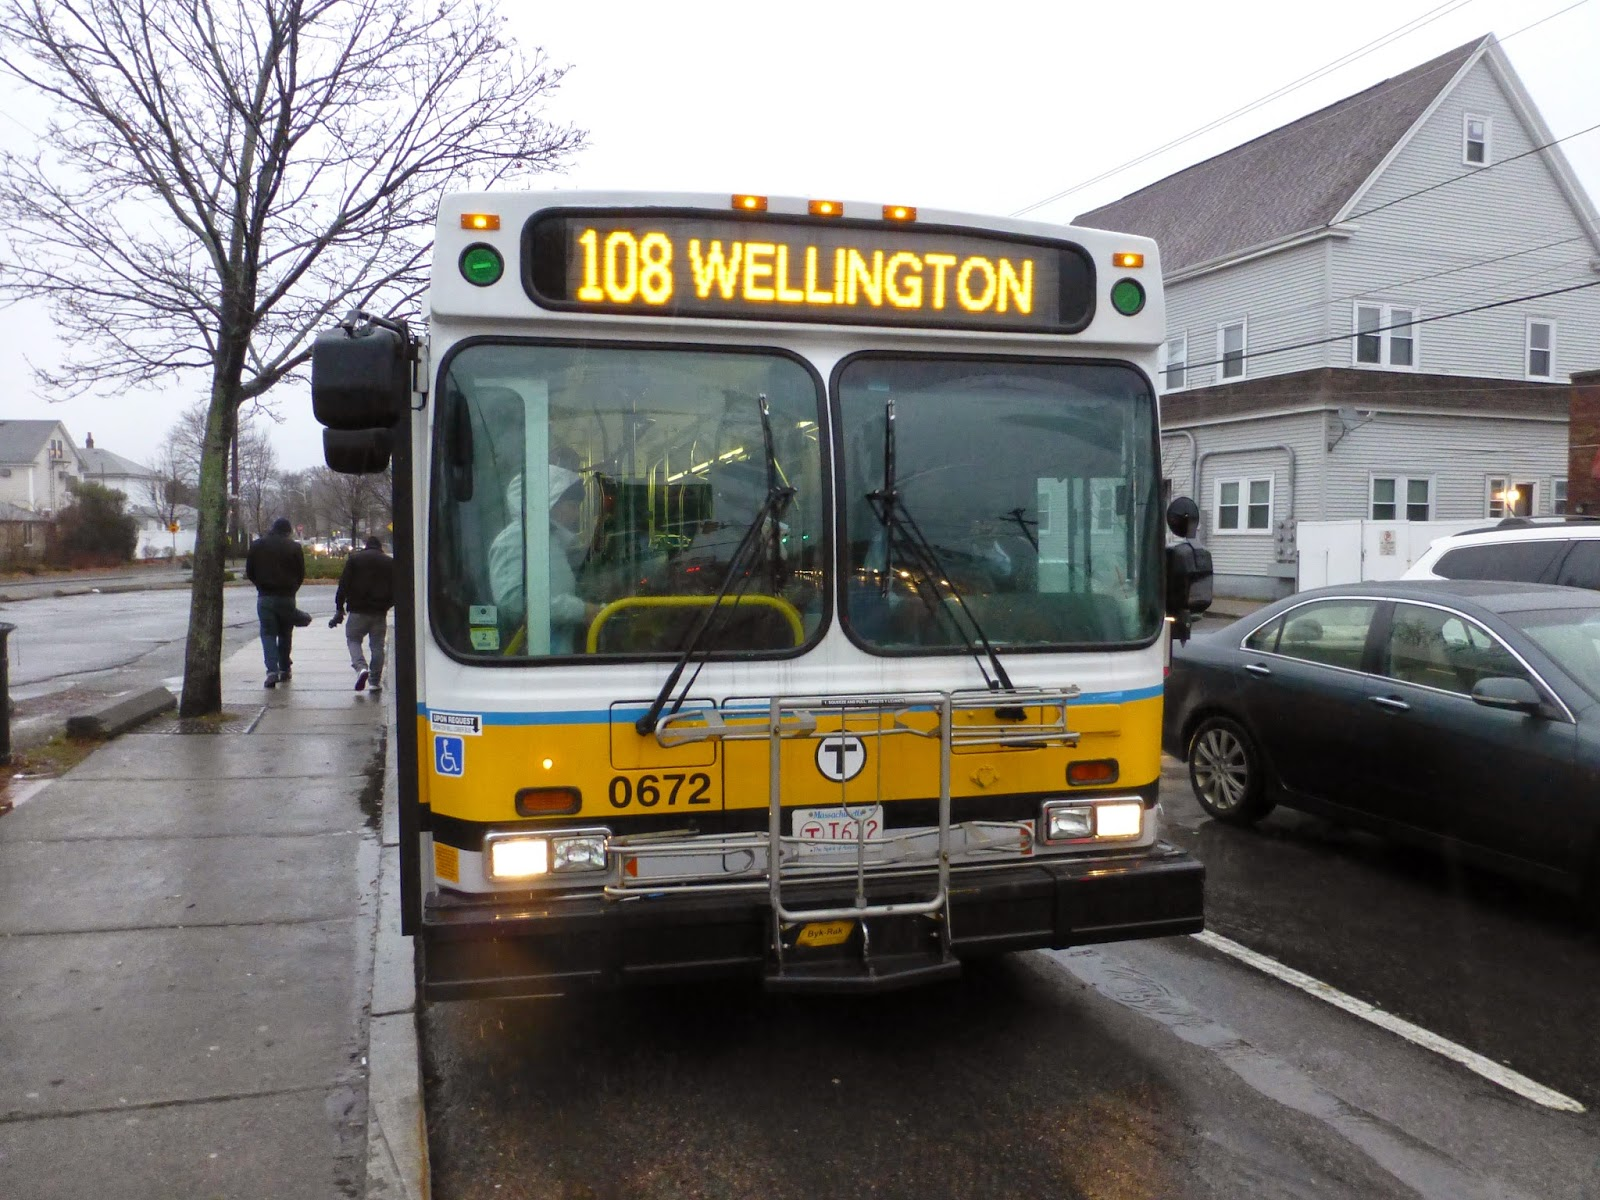 miles on the mbta: 108 (linden square - wellington station via